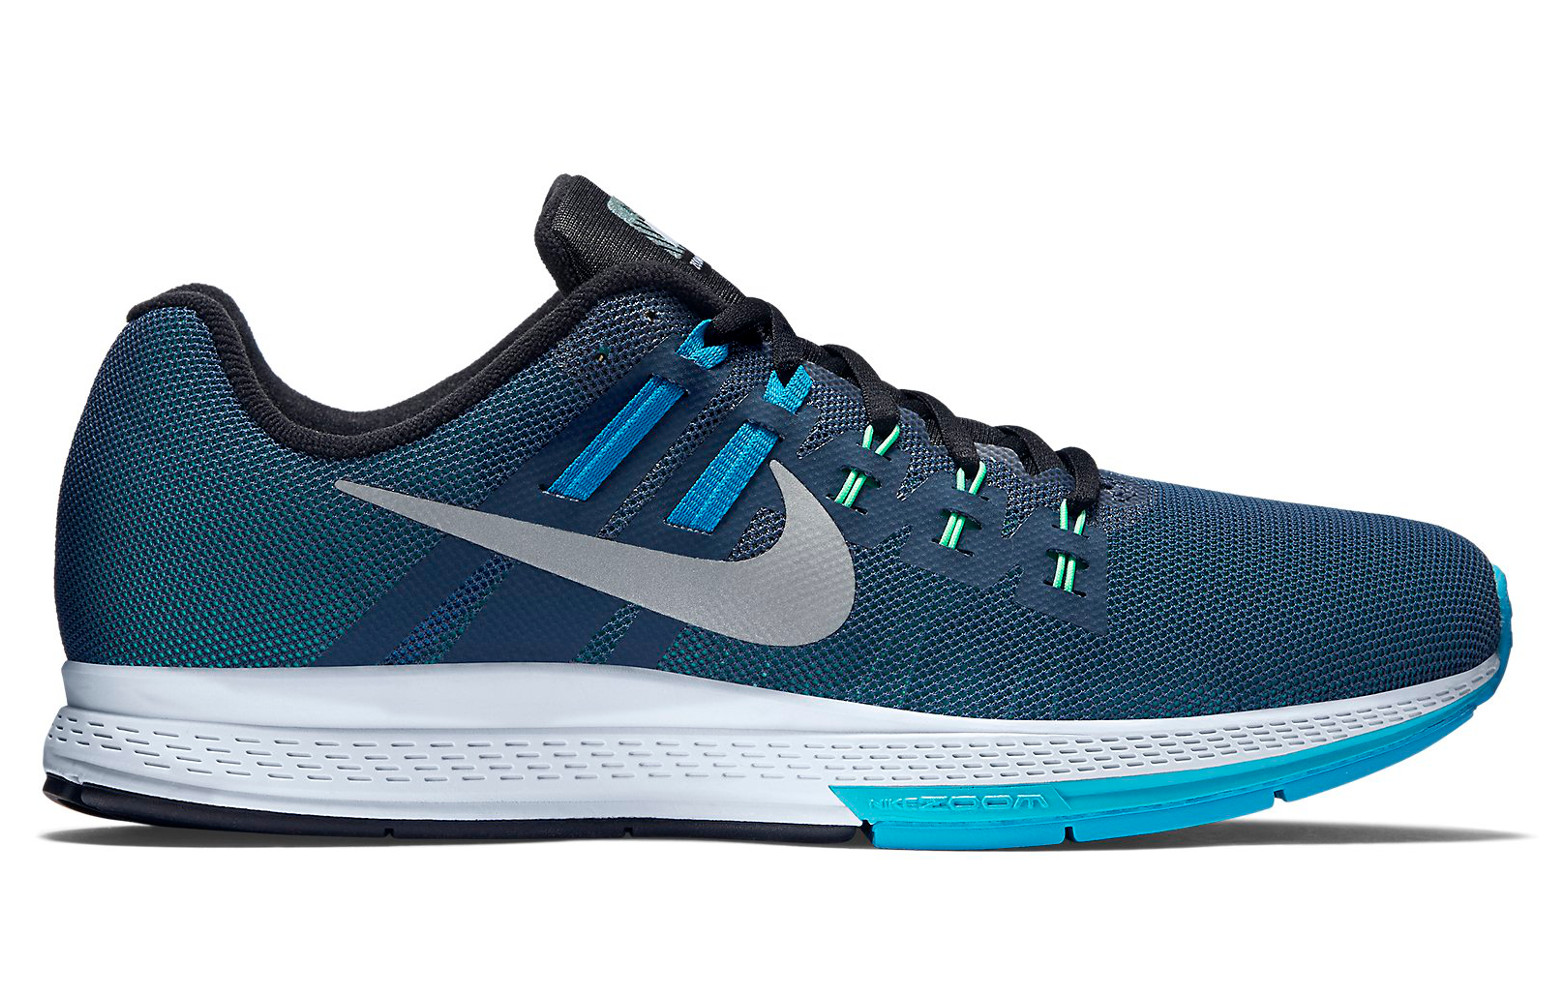 lowest price 12bbf b68f6 Chaussures de Running Nike AIR ZOOM STRUCTURE 19 FLASH Bleu